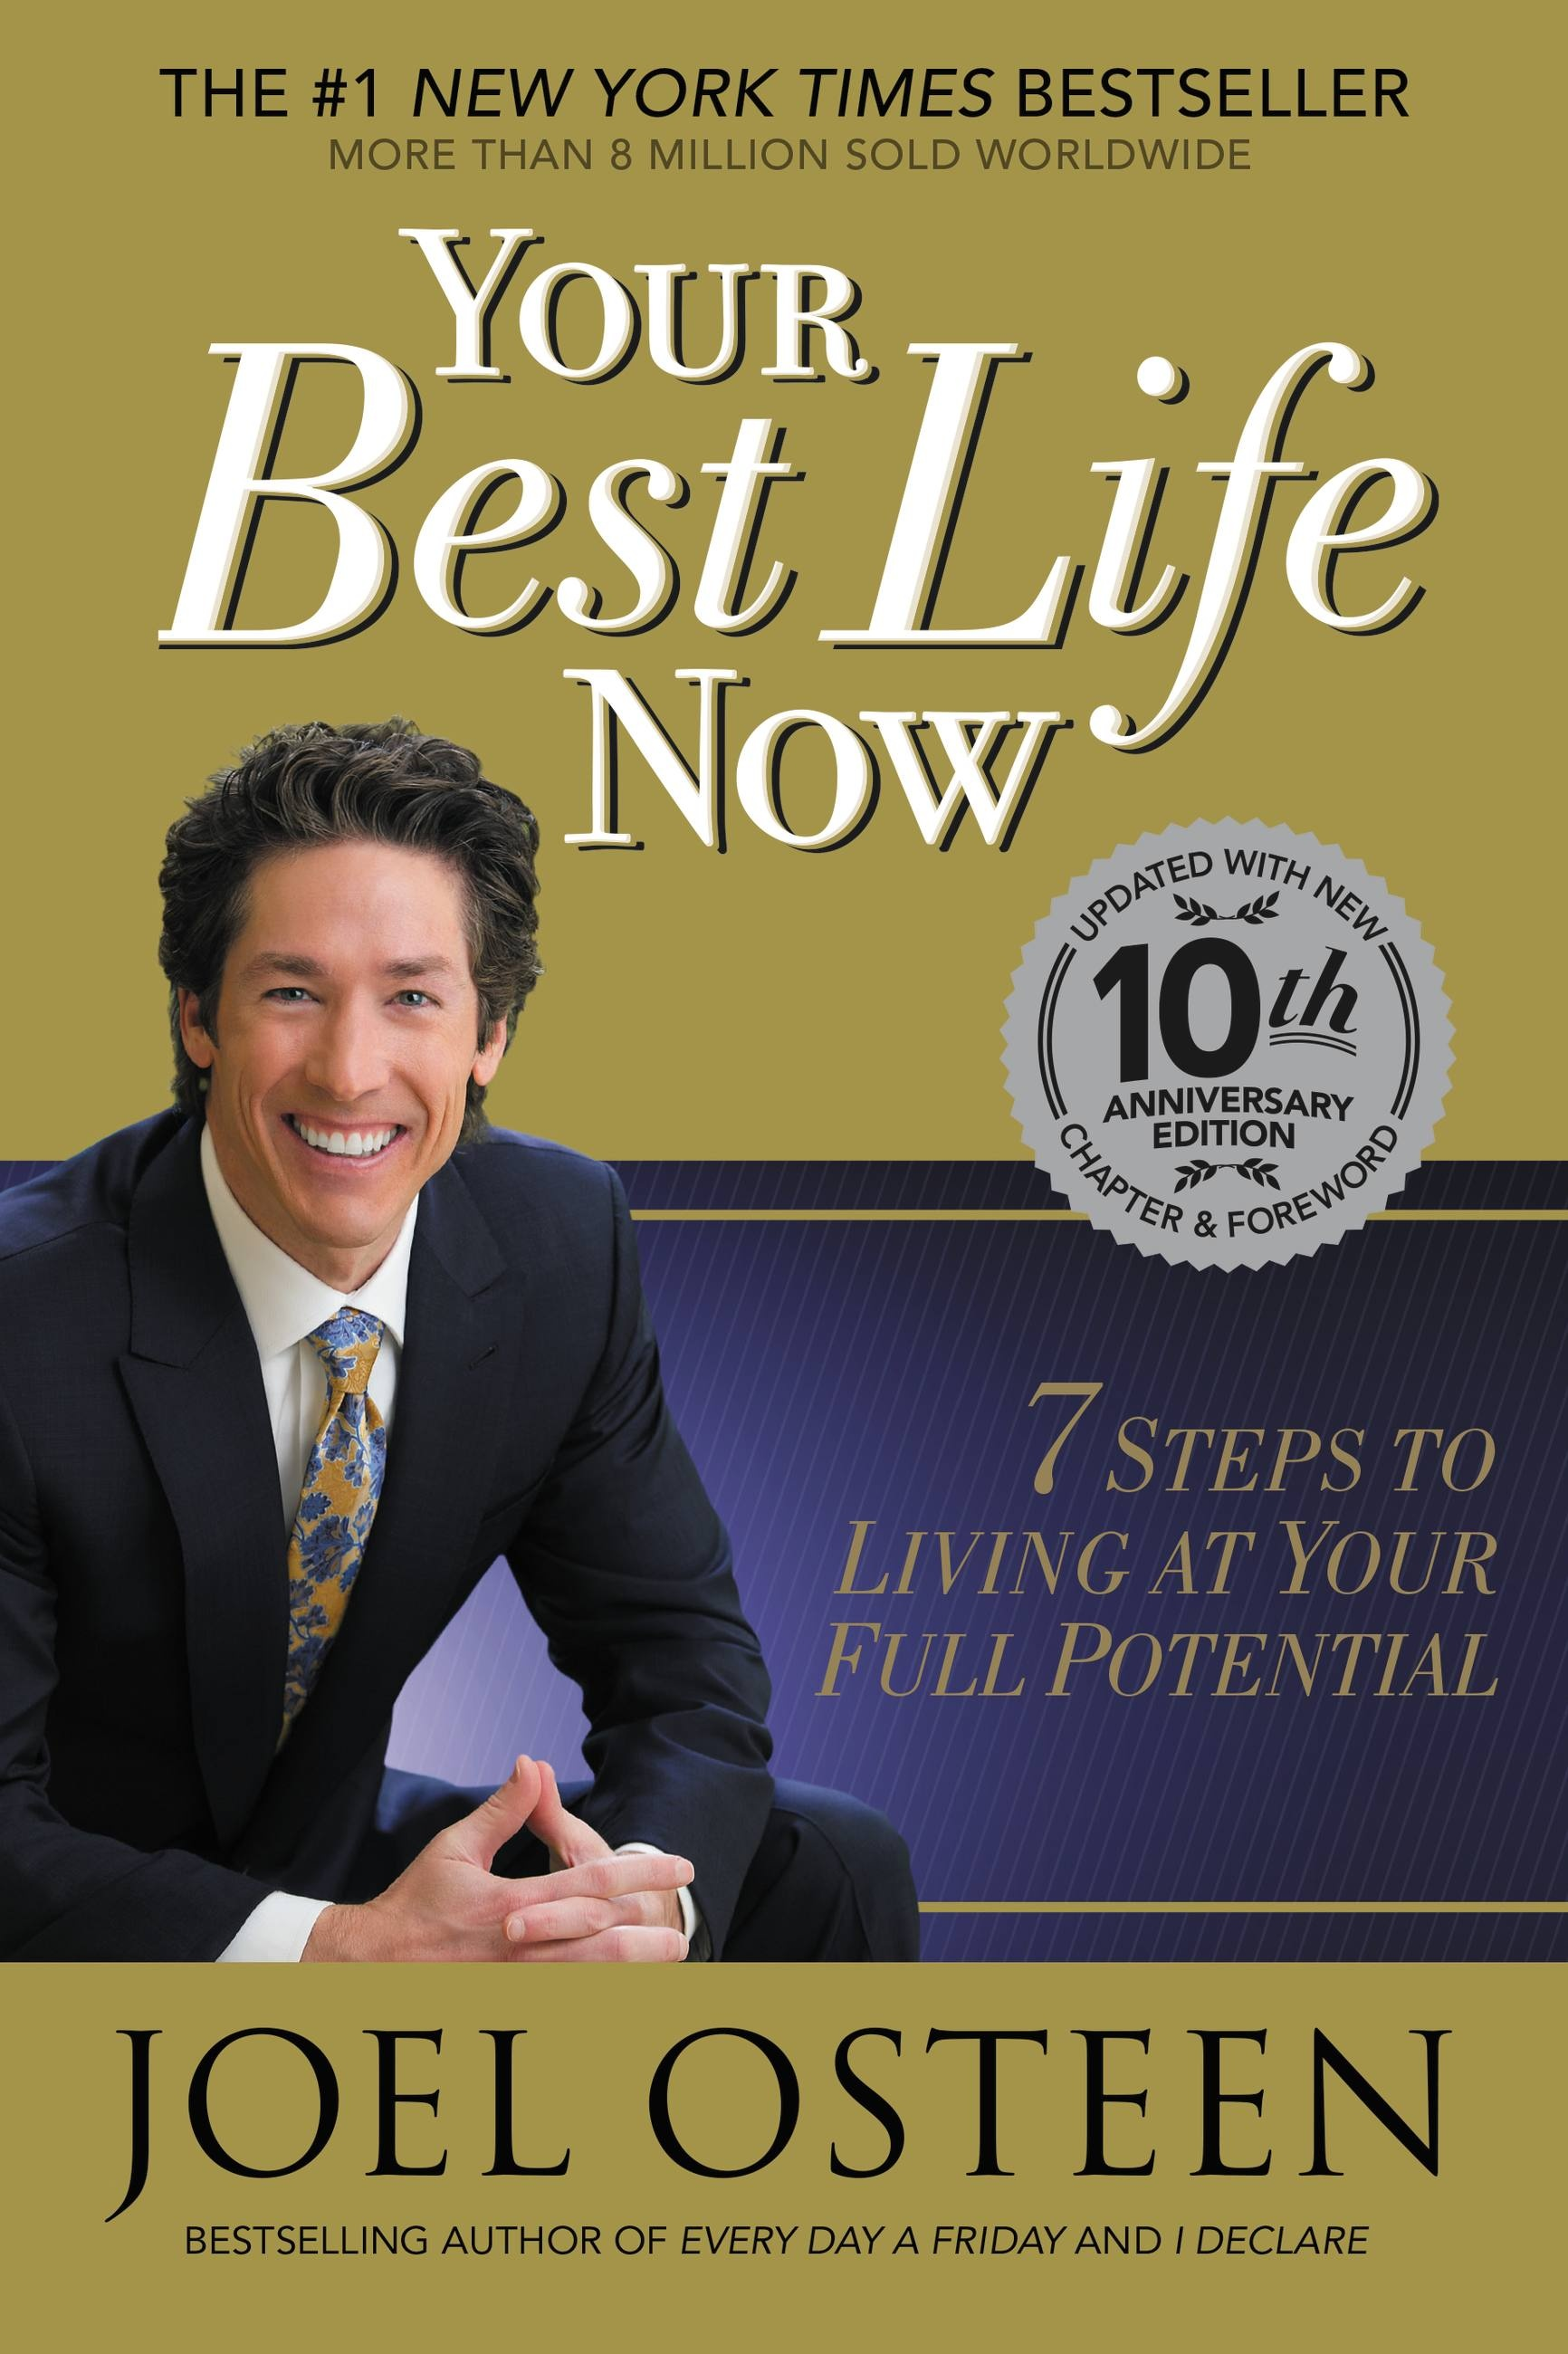 Your Best Life Now by Joel Osteen   Hachette Book Group